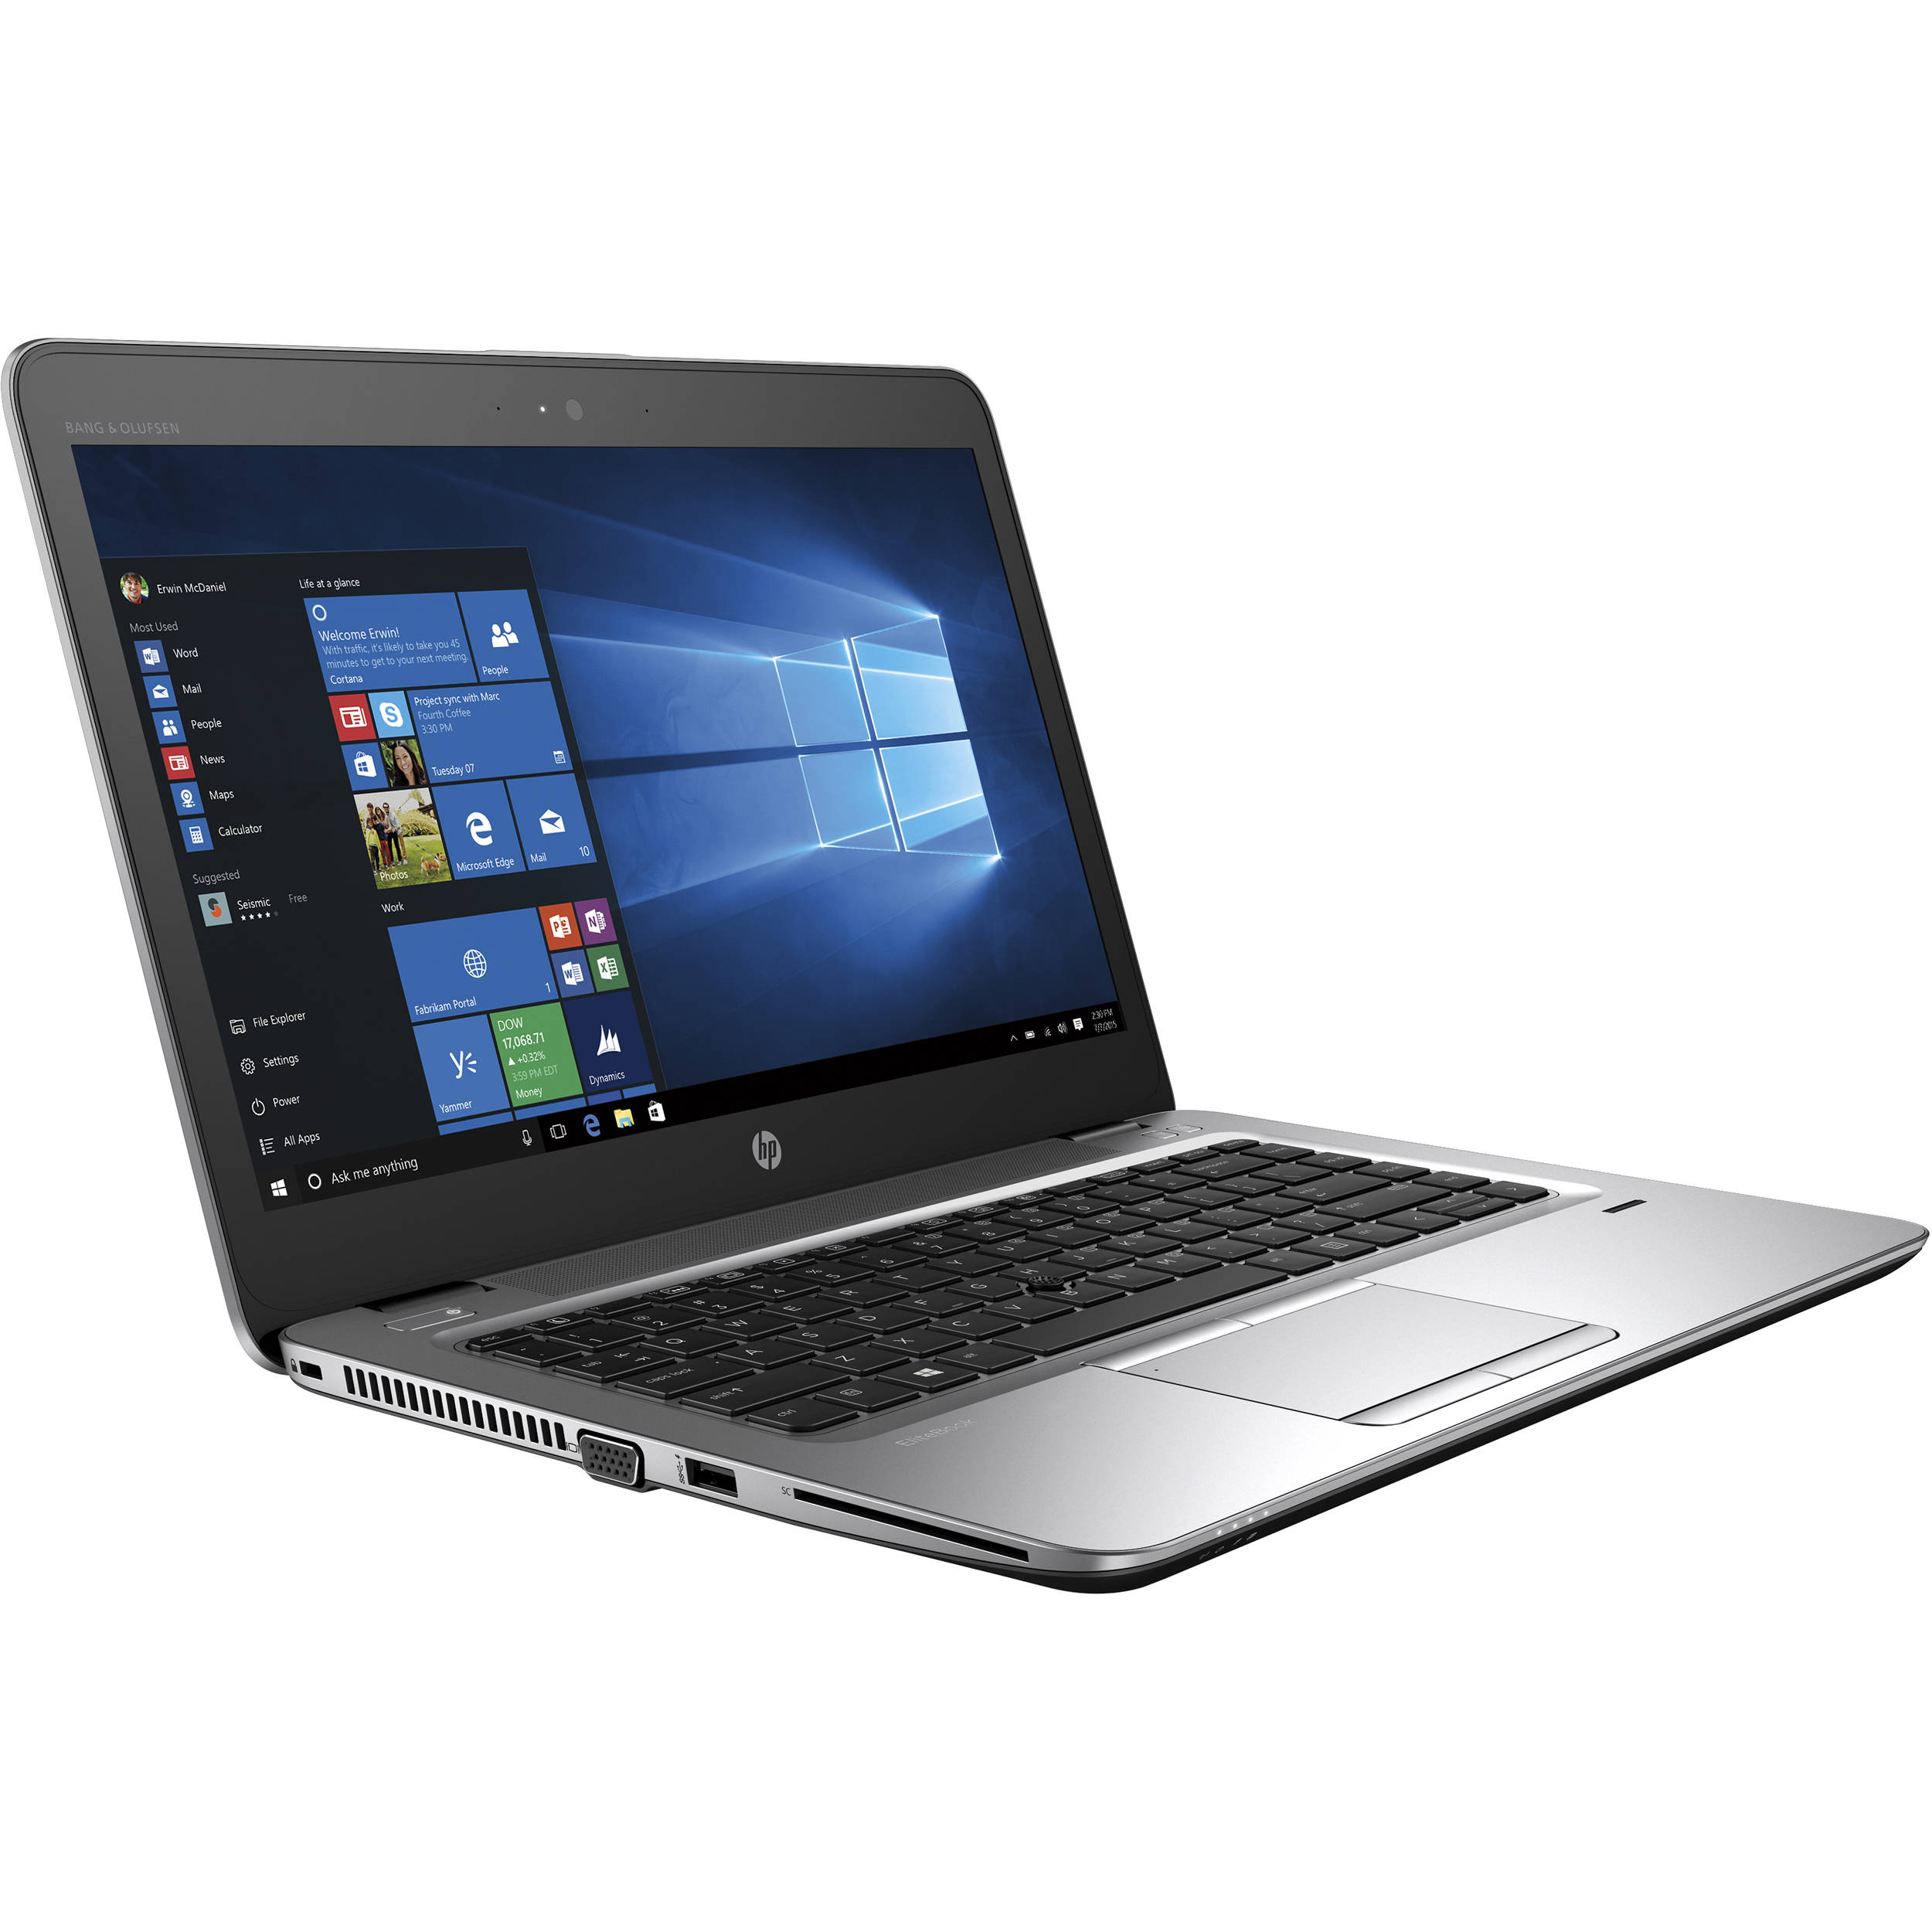 HP ELITEBOOK 8560P NOTEBOOK INFINEON DRIVERS WINDOWS XP